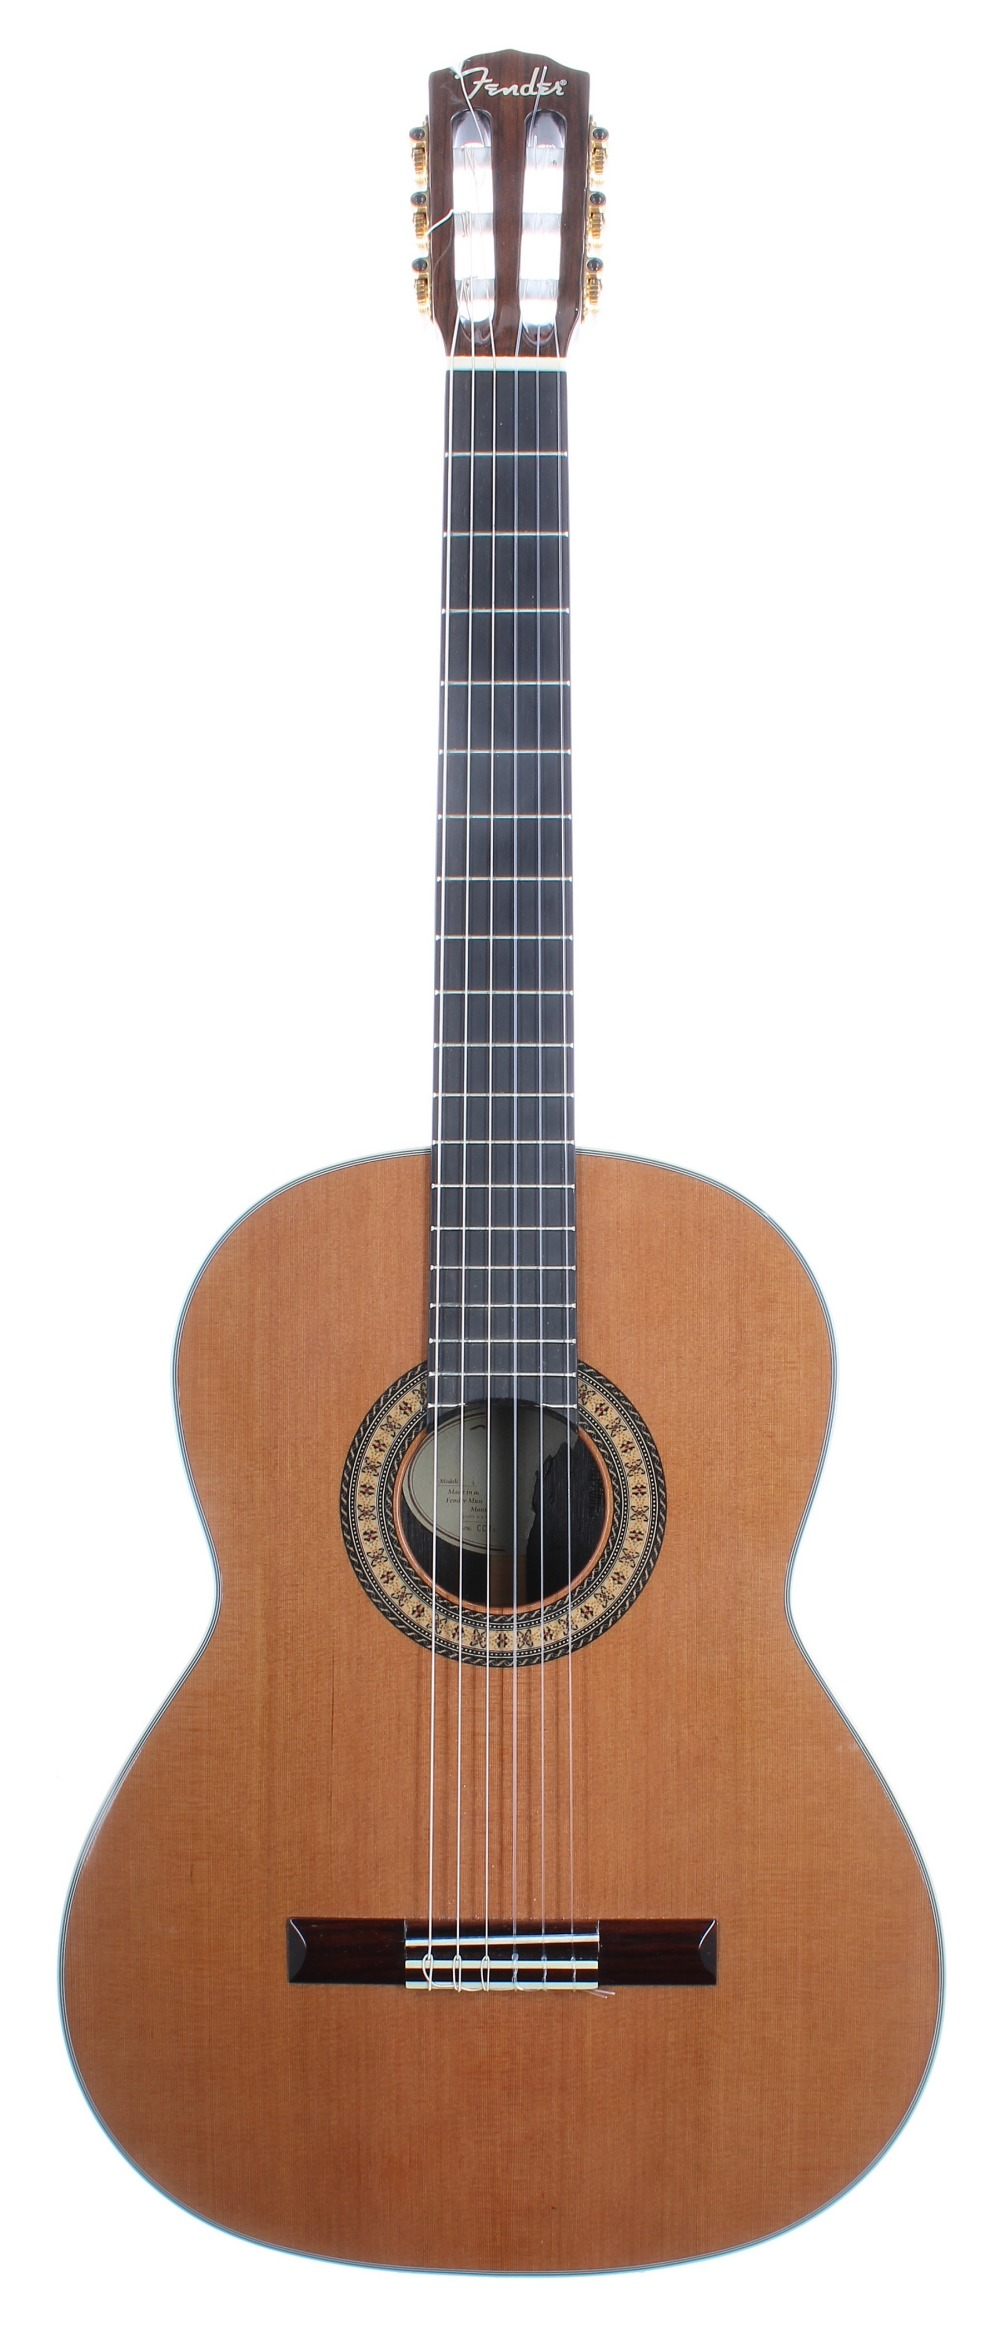 Fender CN-330AS classical guitar; Back and sides: rosewood, lacquer damage to back edge near binding